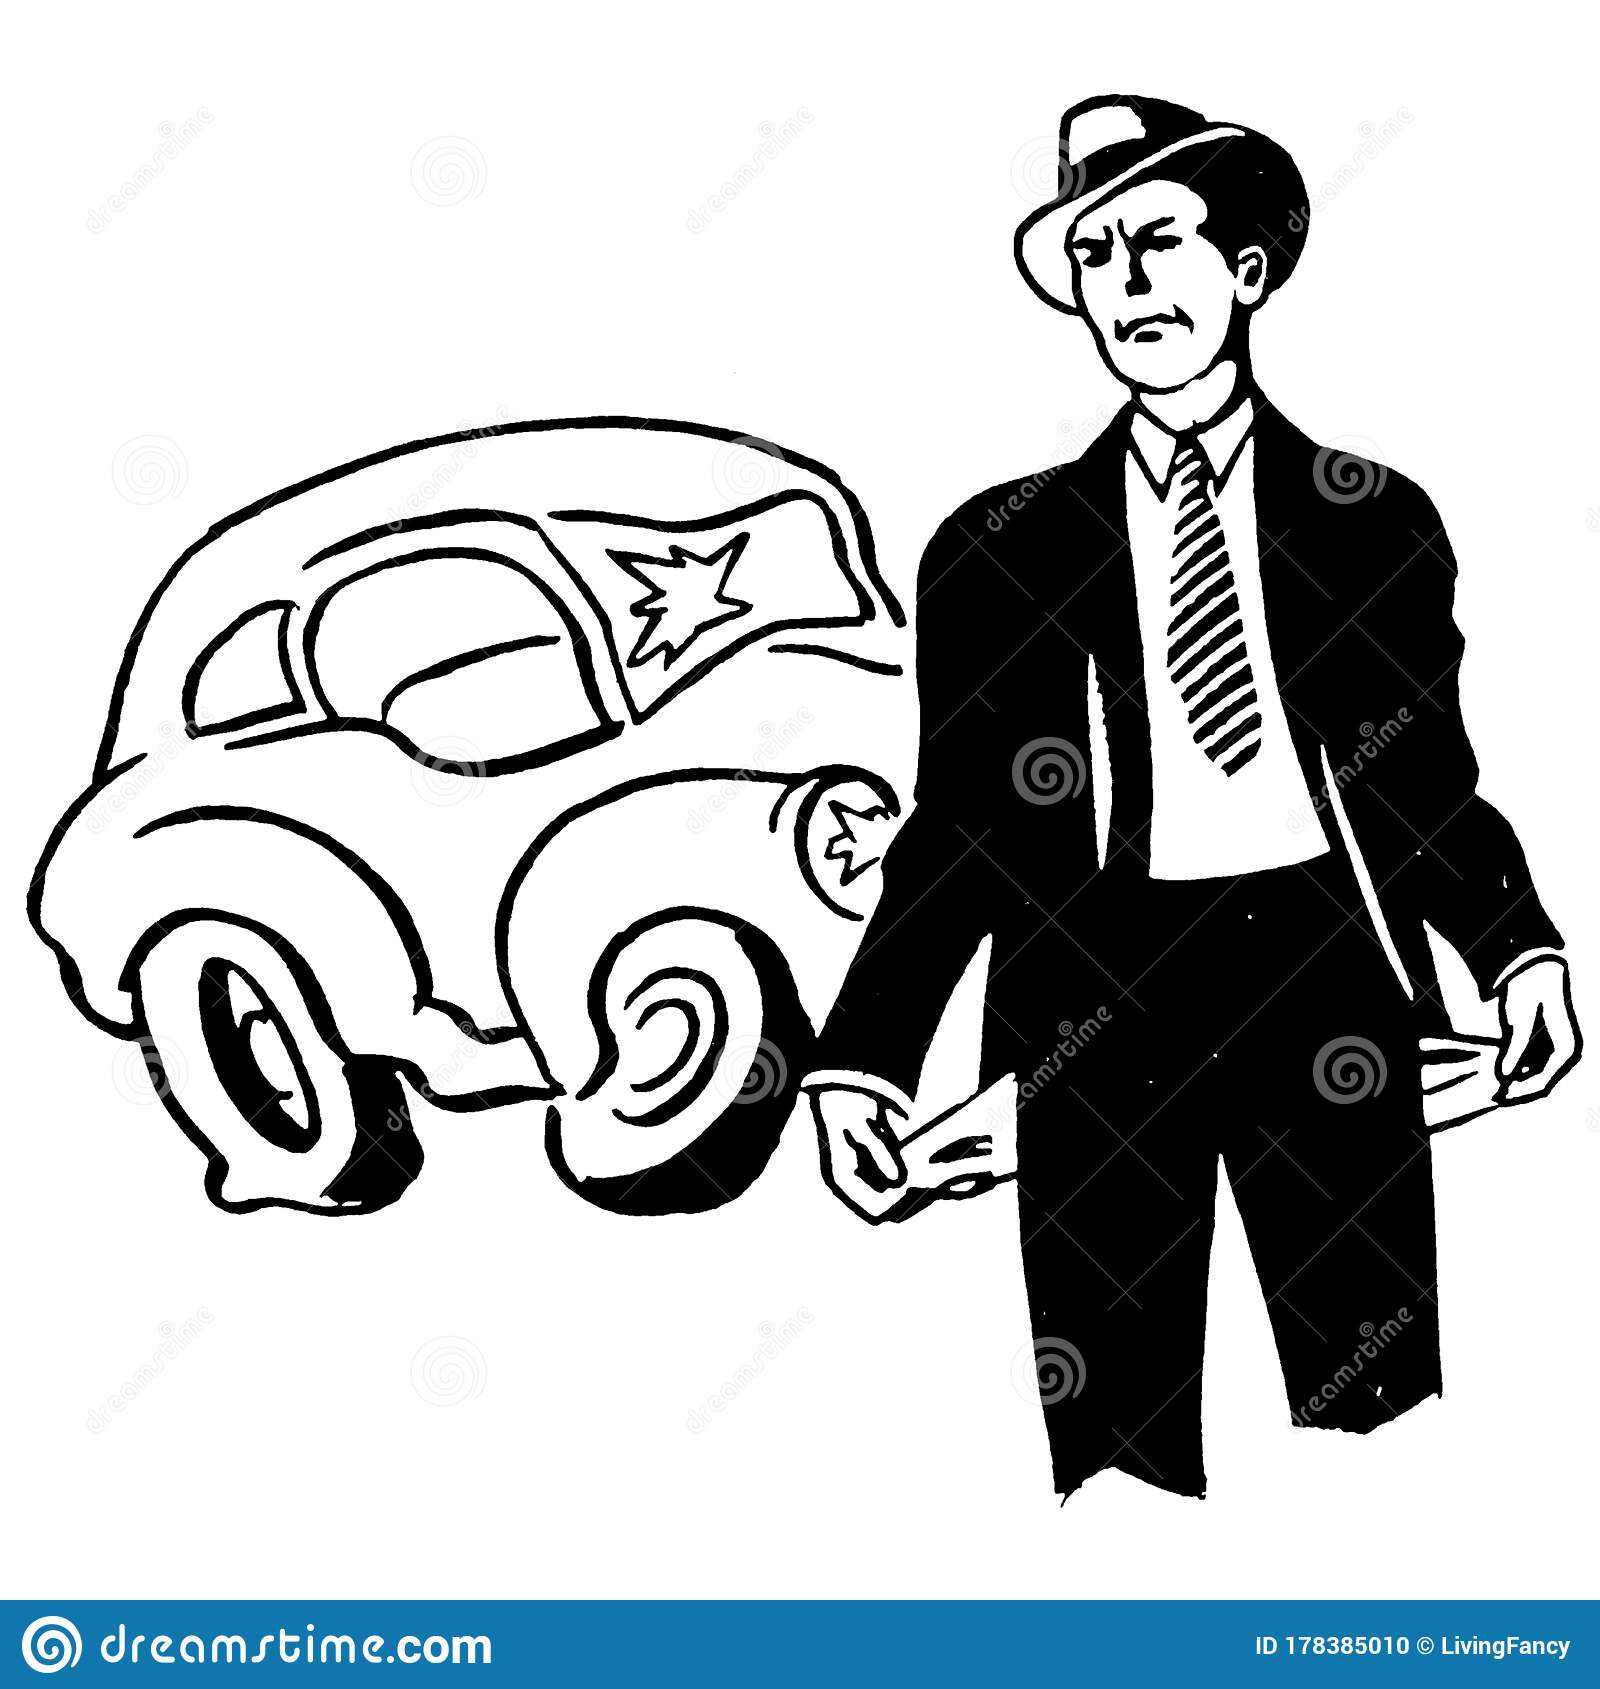 Vintage Clipart 265 Man In Accident With No Insurance Or Money Stock  Illustration - Illustration of posters, black: 178385010